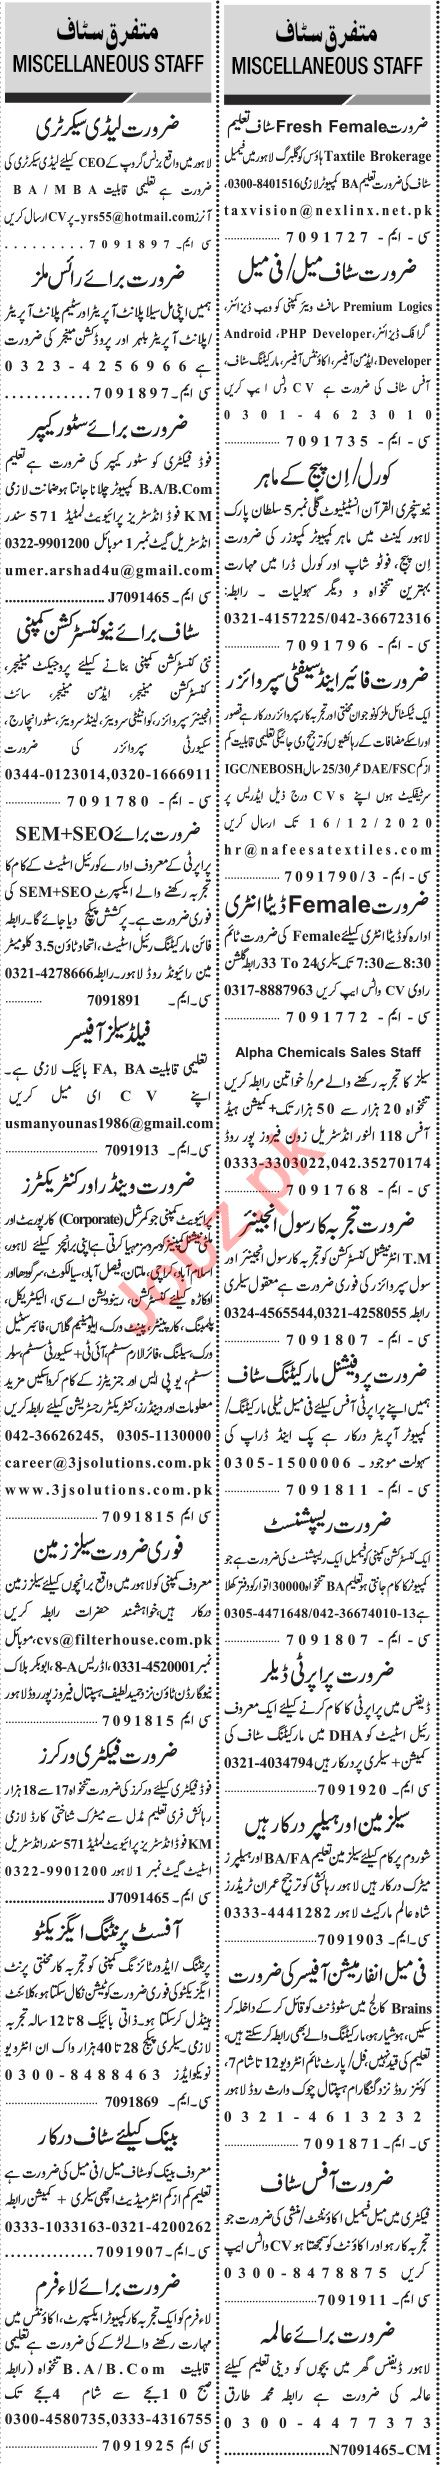 Jang Sunday Classified Ads 13 Dec 2020 for Executive Staff